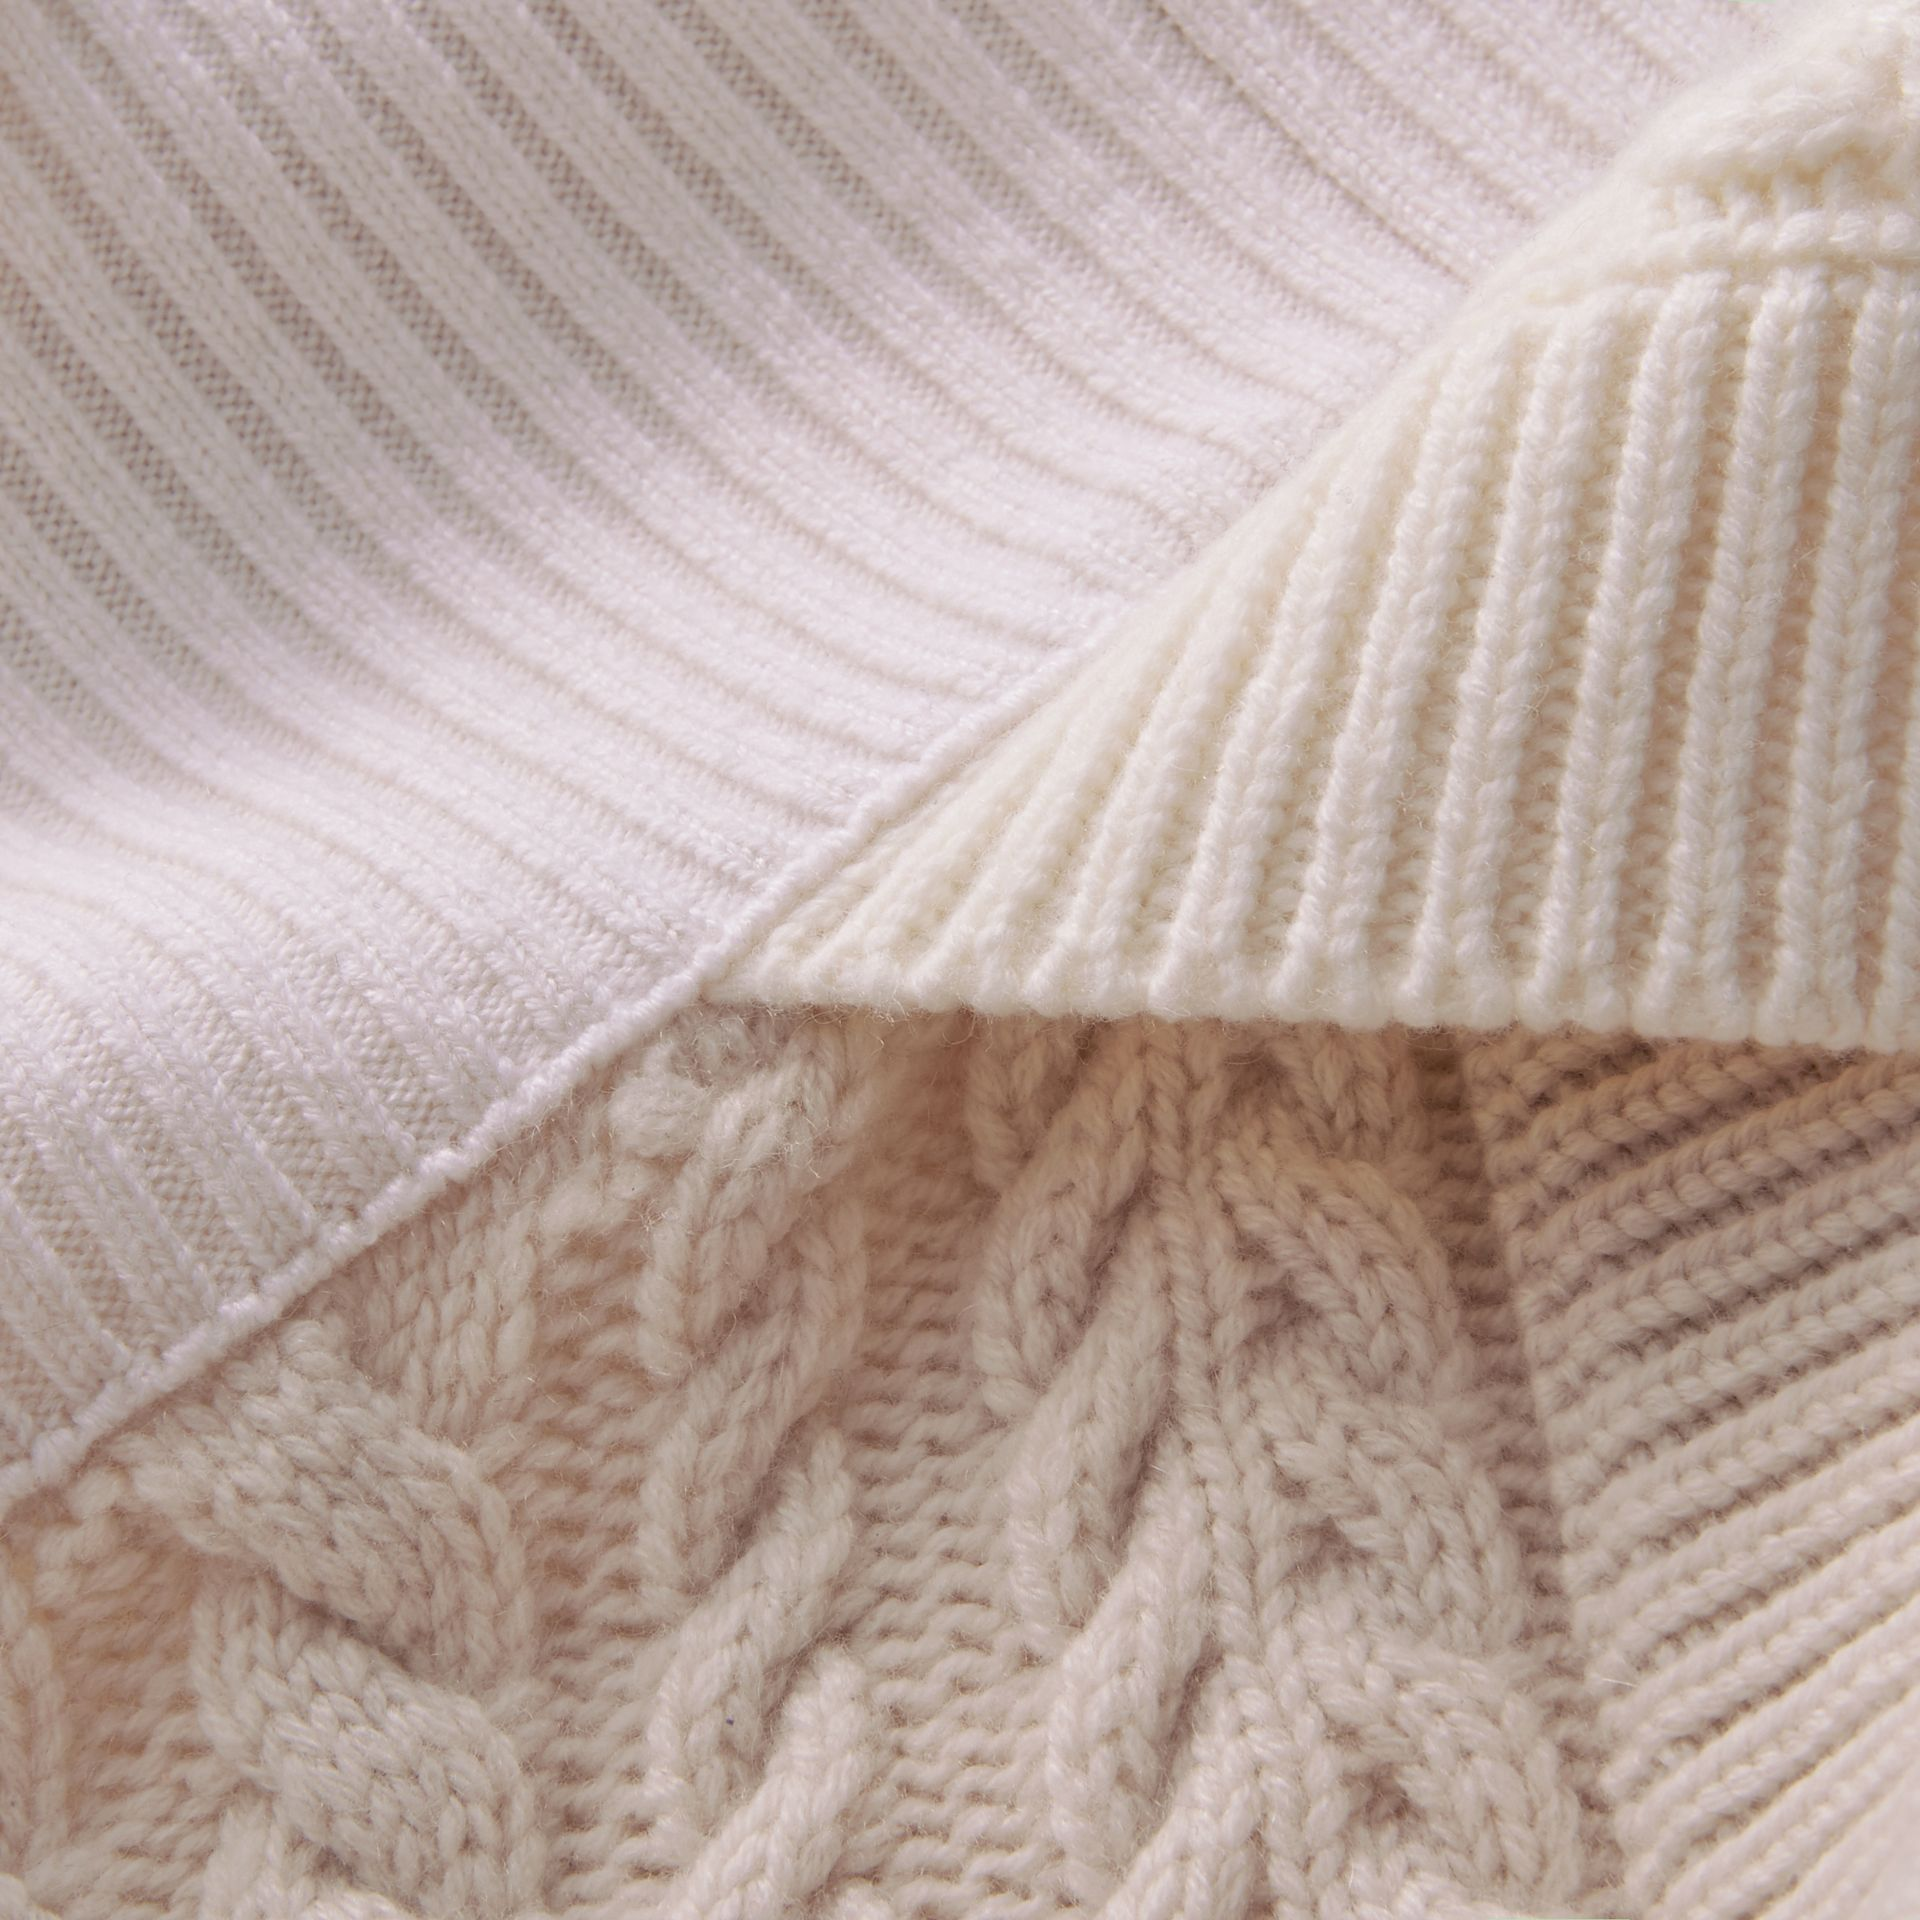 Shearling Collar Knitted Wool Cashmere Jacket in Natural White - Women | Burberry - gallery image 2